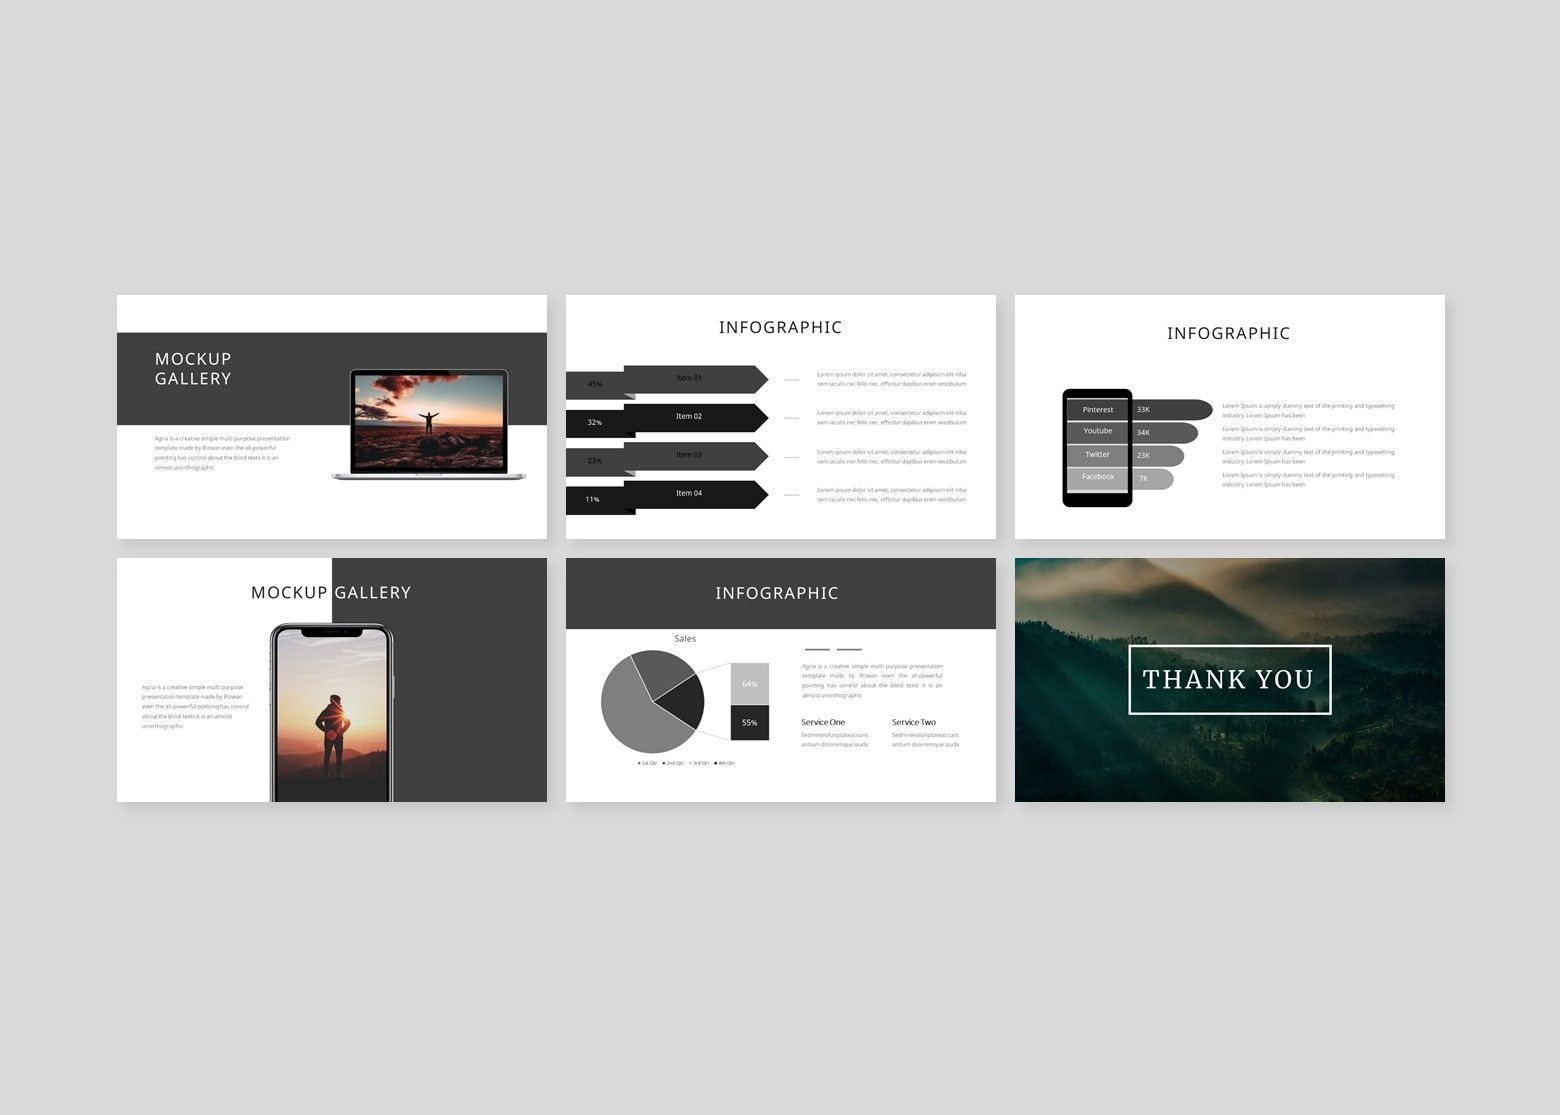 Argonda – Creative Google Slide Business Template, Slide 5, 08573, Business Models — PoweredTemplate.com